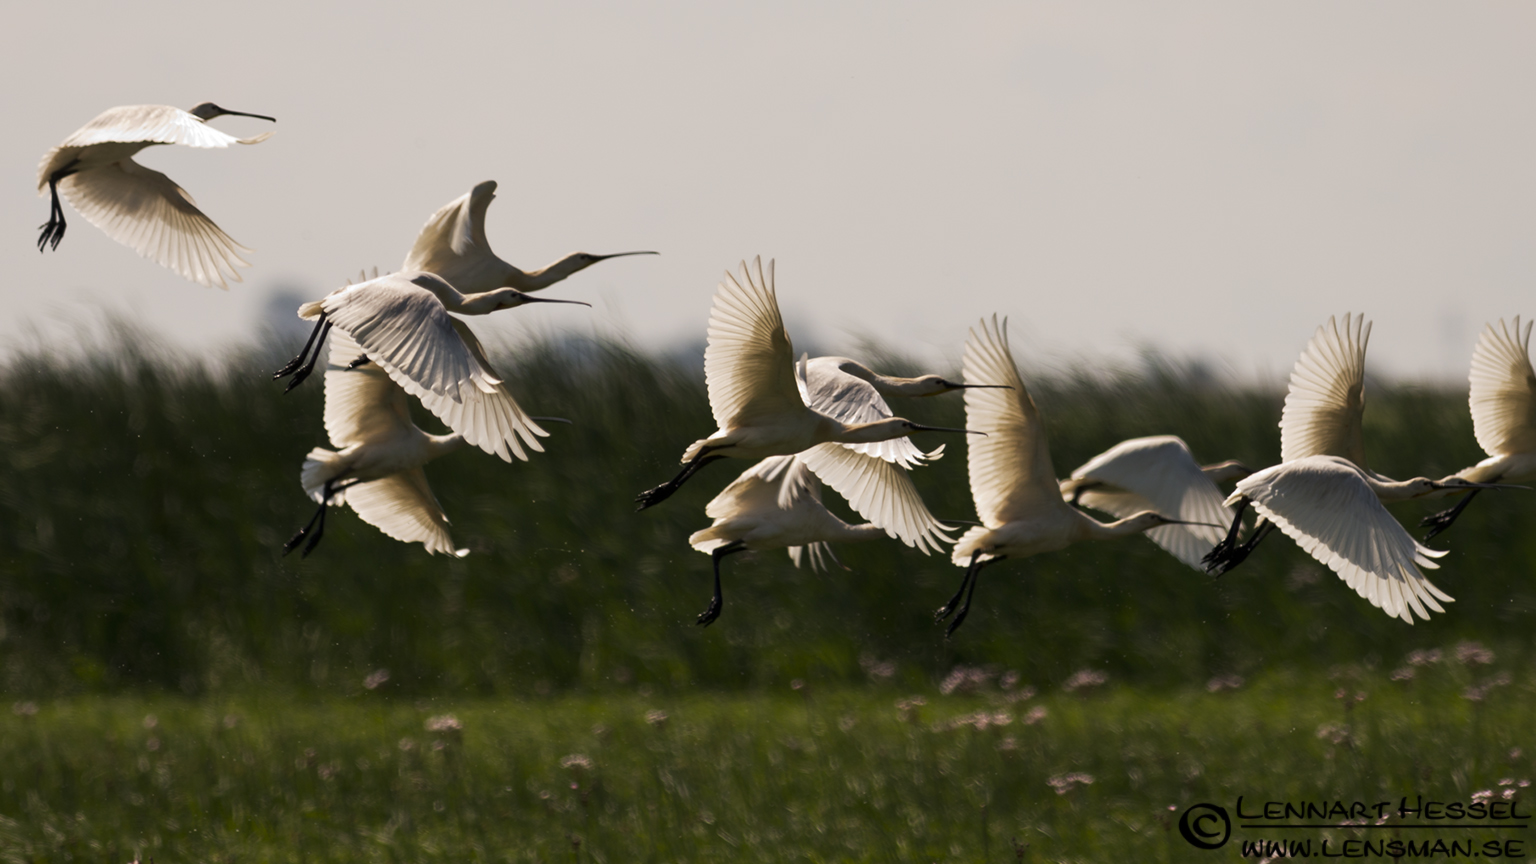 Spoonbills over the rice fields in Hungary